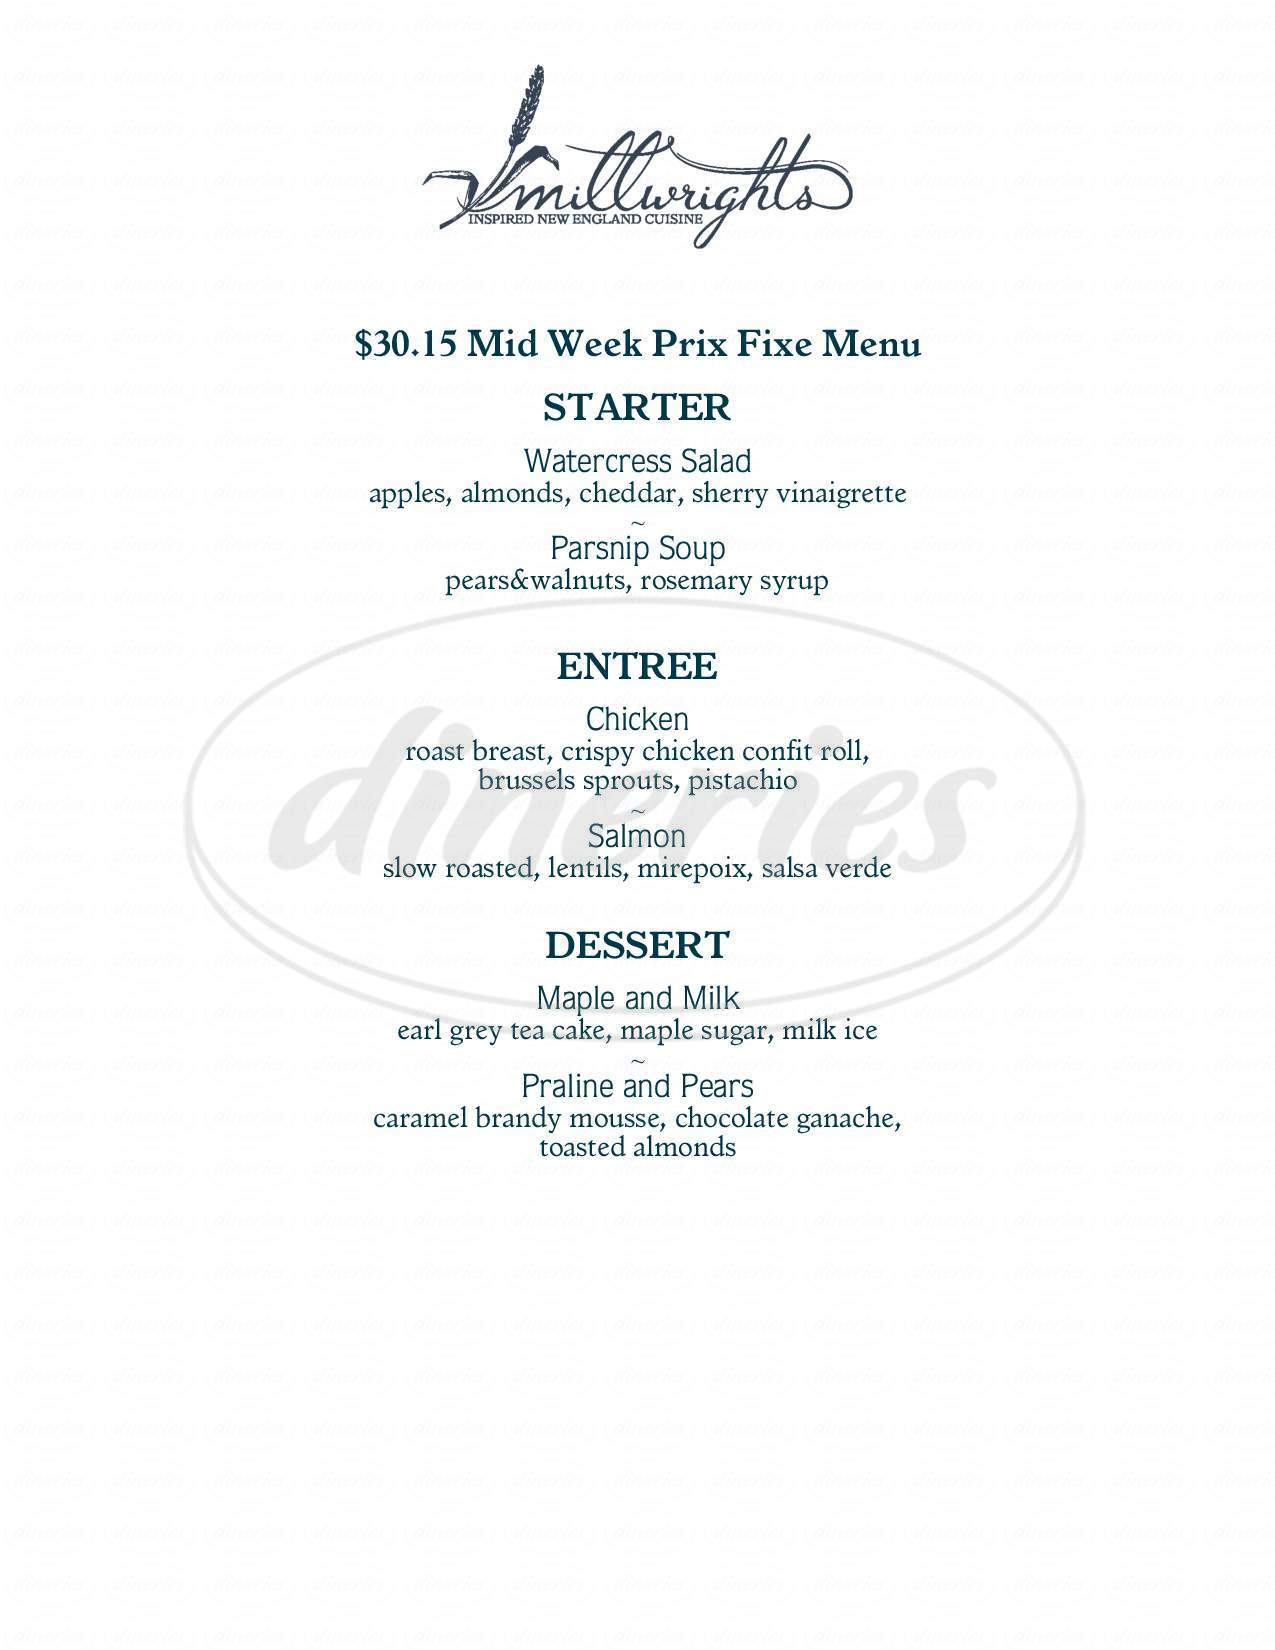 menu for Millwrights